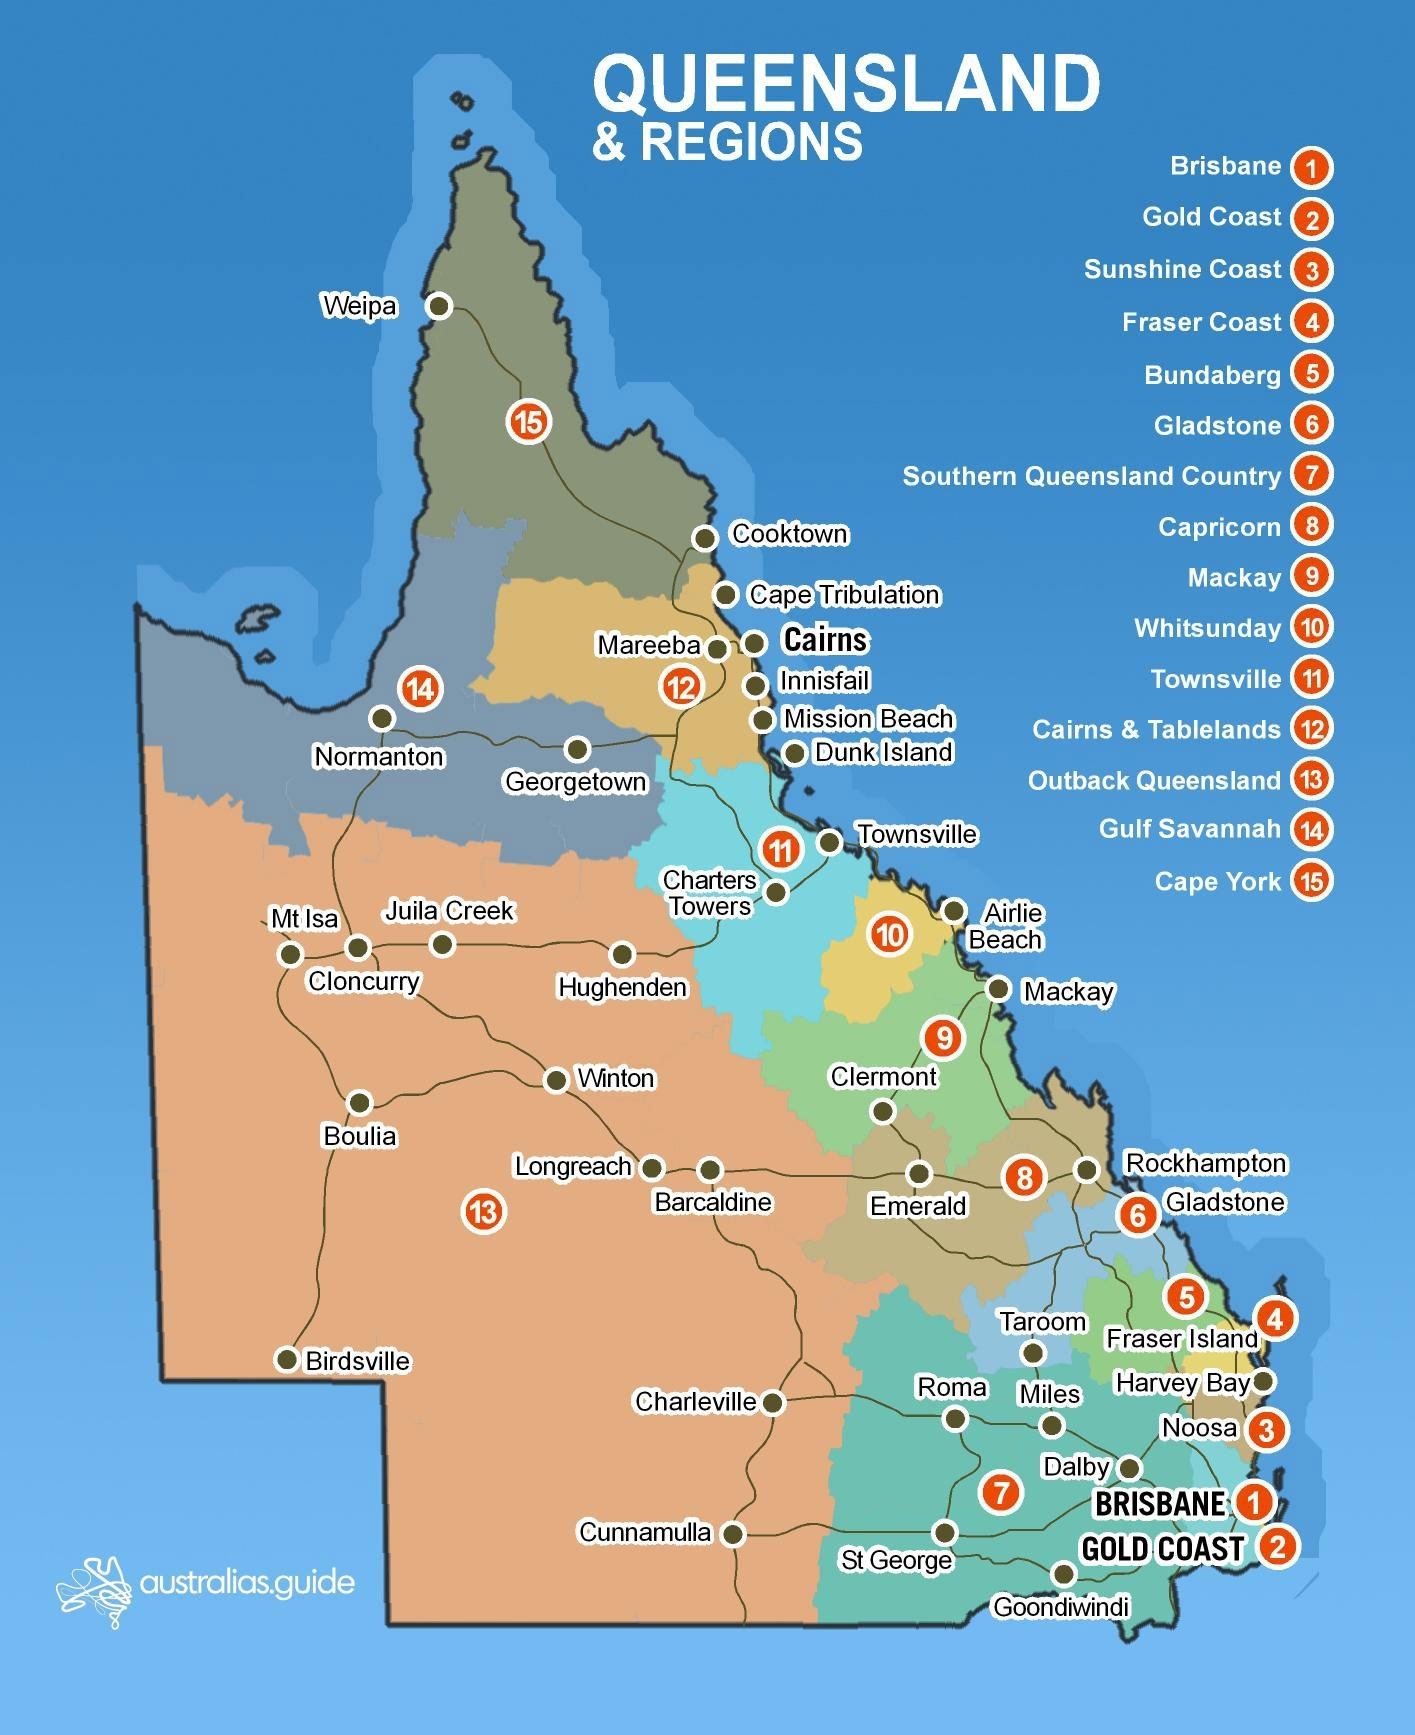 Map Of Queensland | Queensland - Australia's Guide pertaining to Cairns Australia Map Google Earth